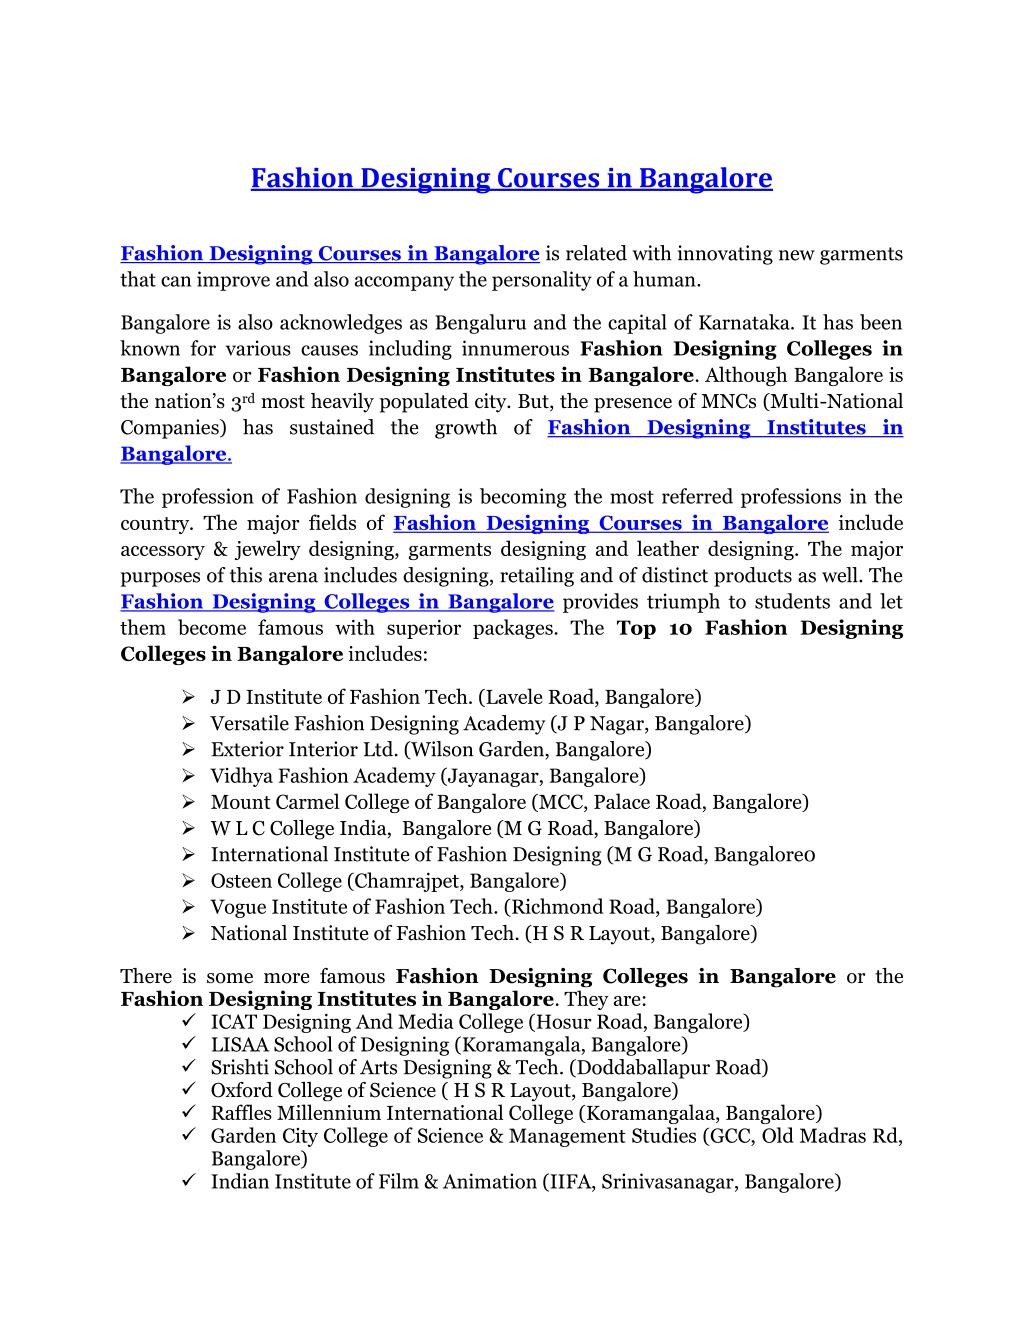 Ppt Fashion Designing Courses In Bangalore Powerpoint Presentation Free Download Id 7320628